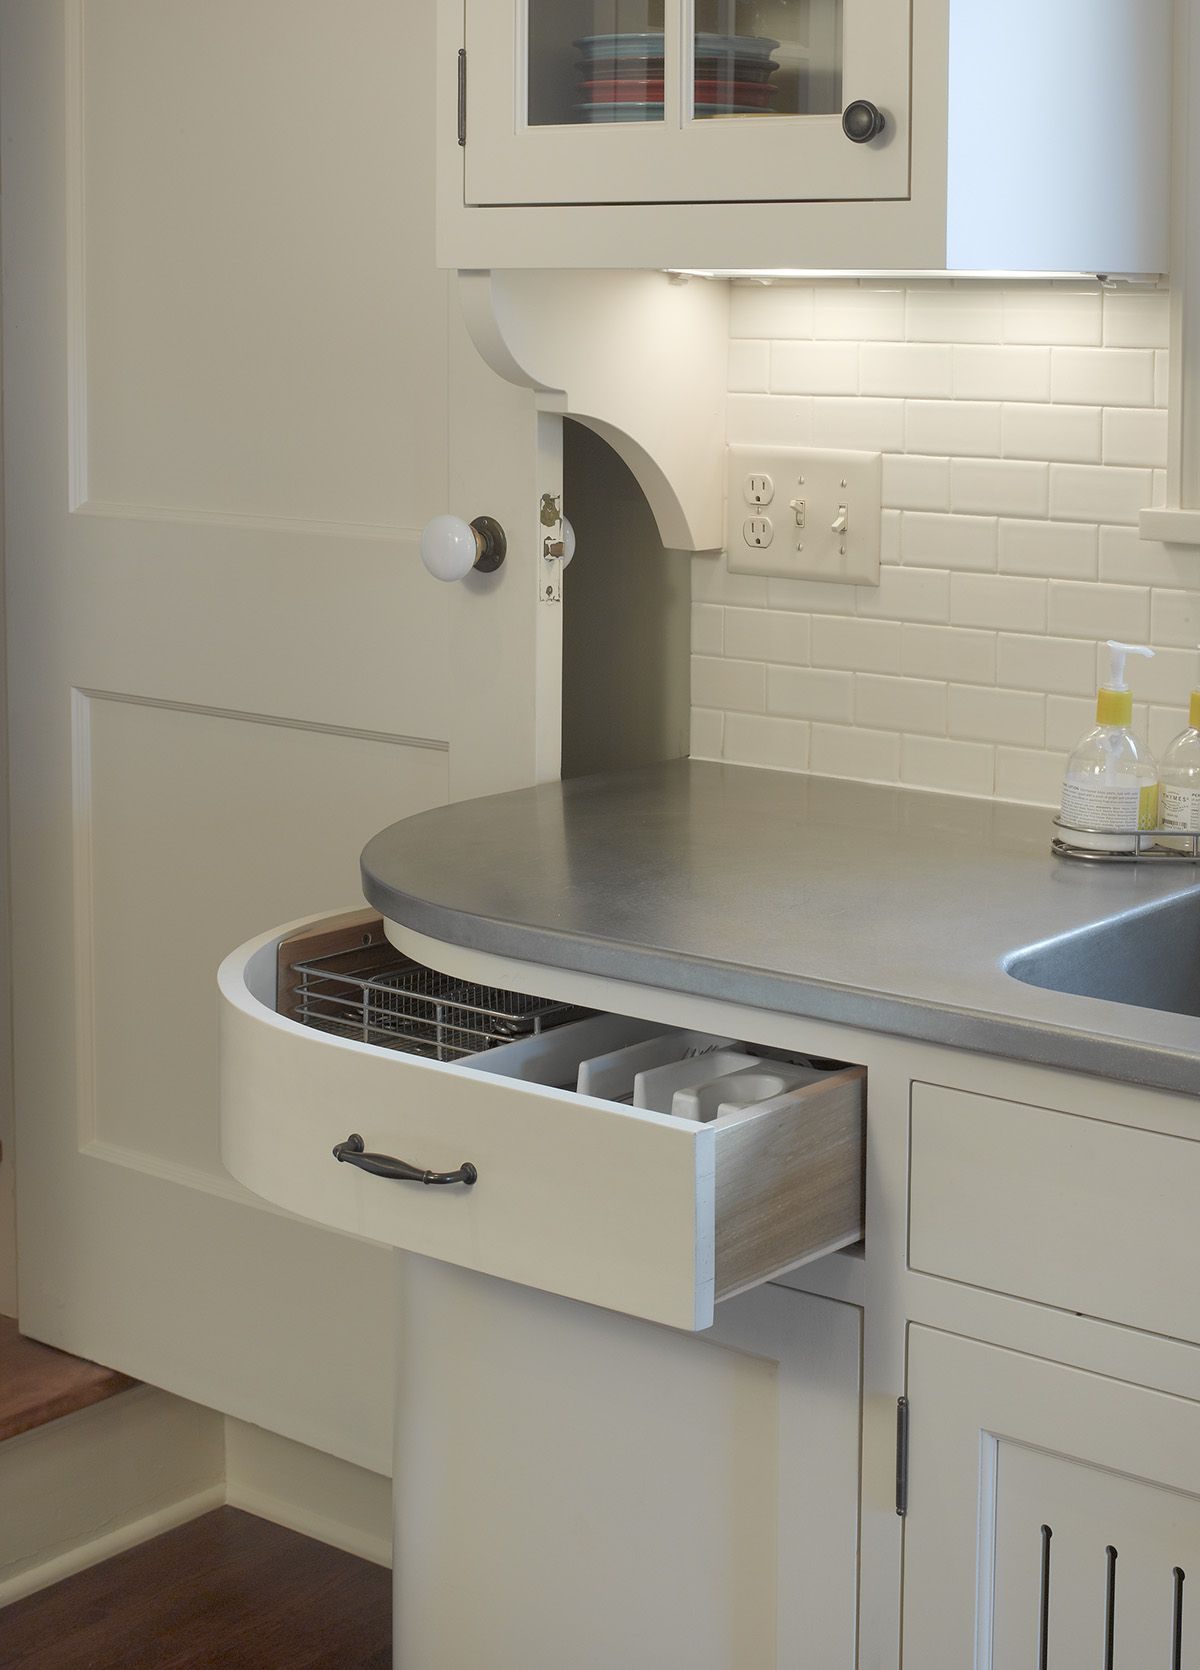 A Curved Drawer Solves Common Kitchen